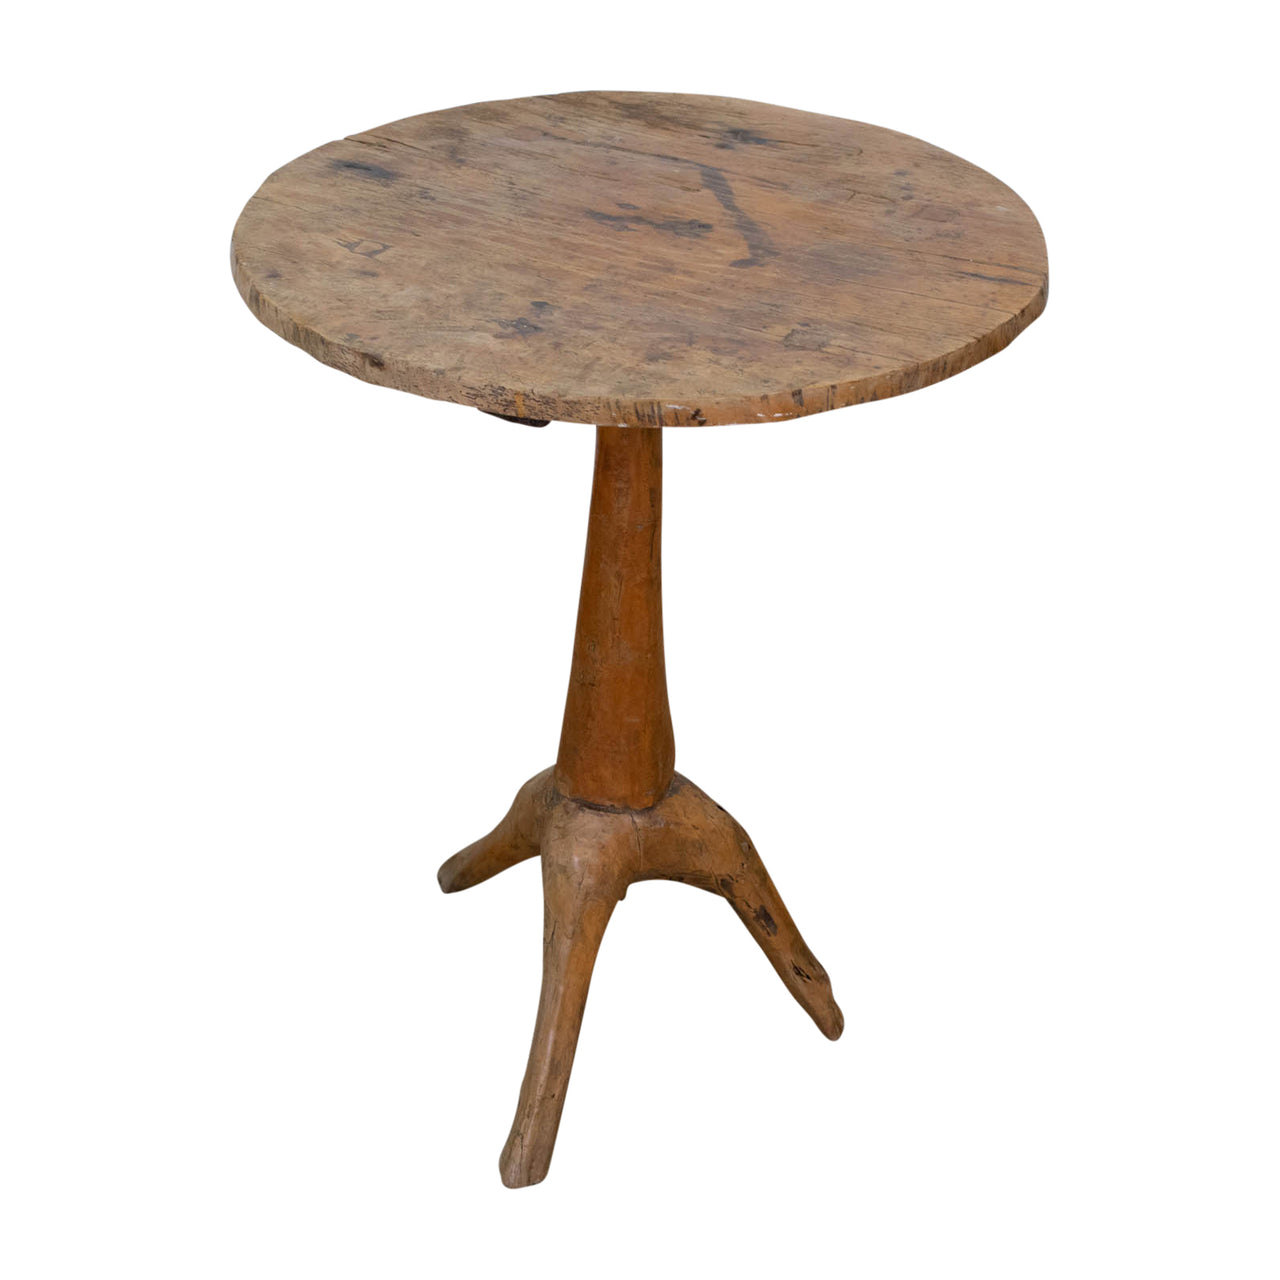 A Natrualistic Wooden Side table